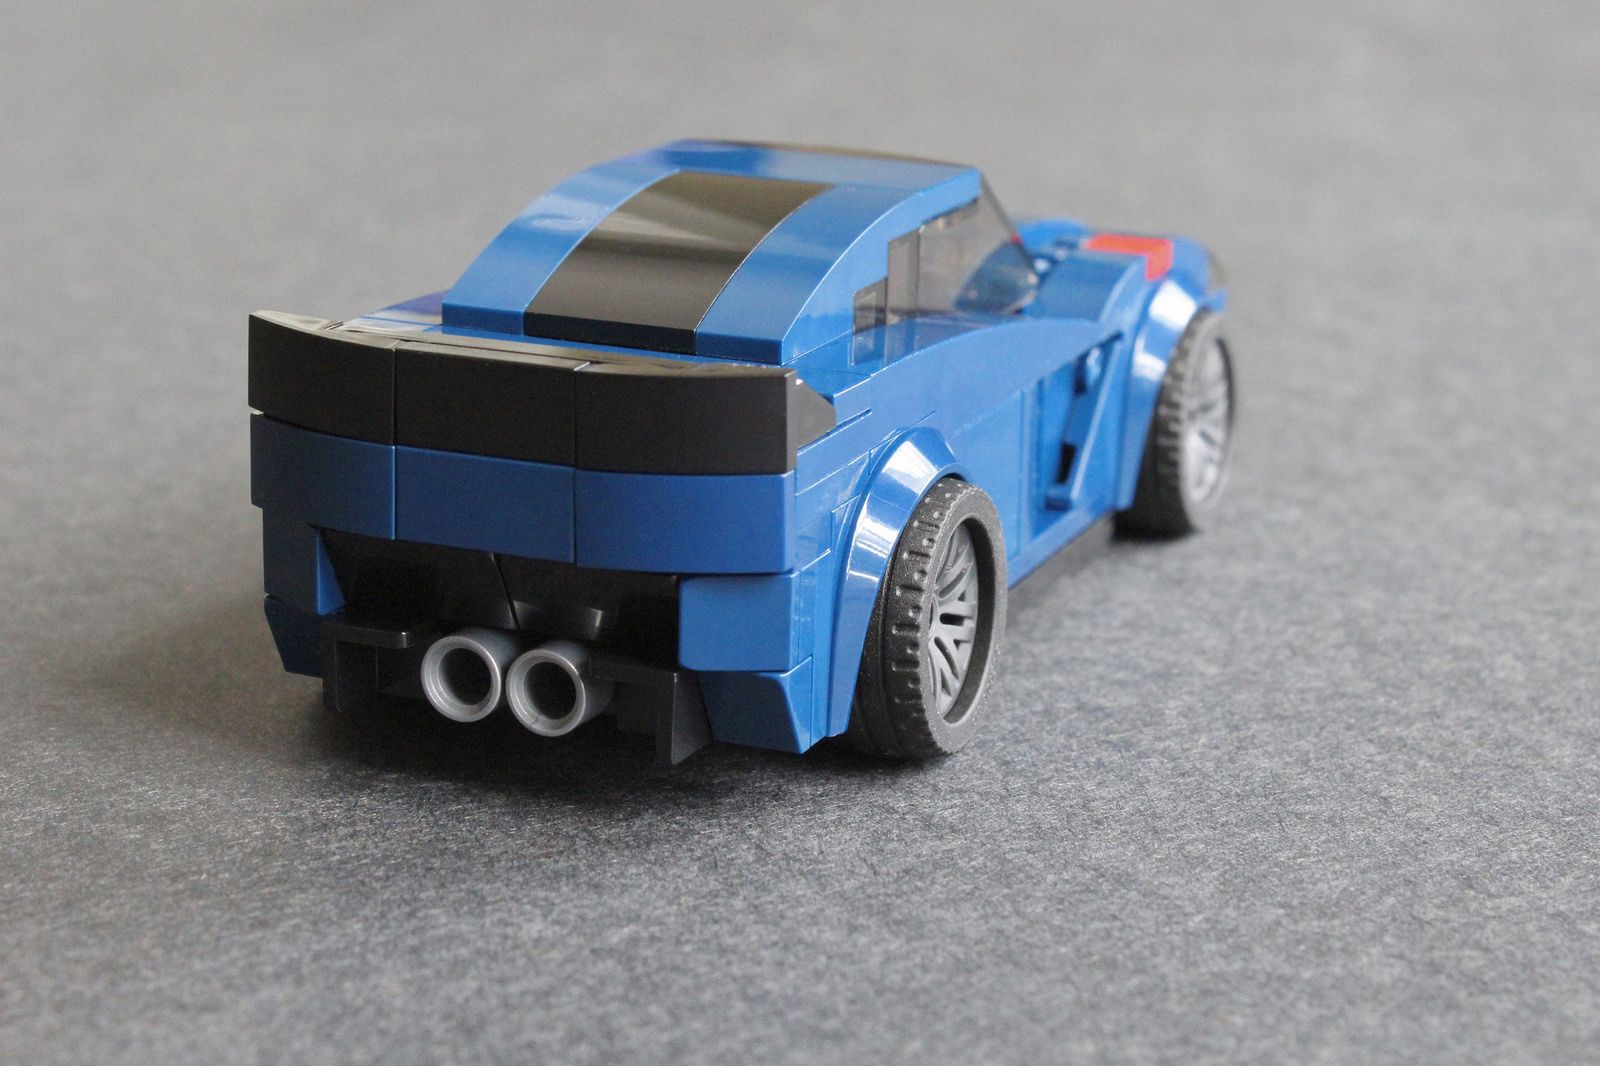 Toyota Supra From The Fast And The Furious Legos Lego Cool